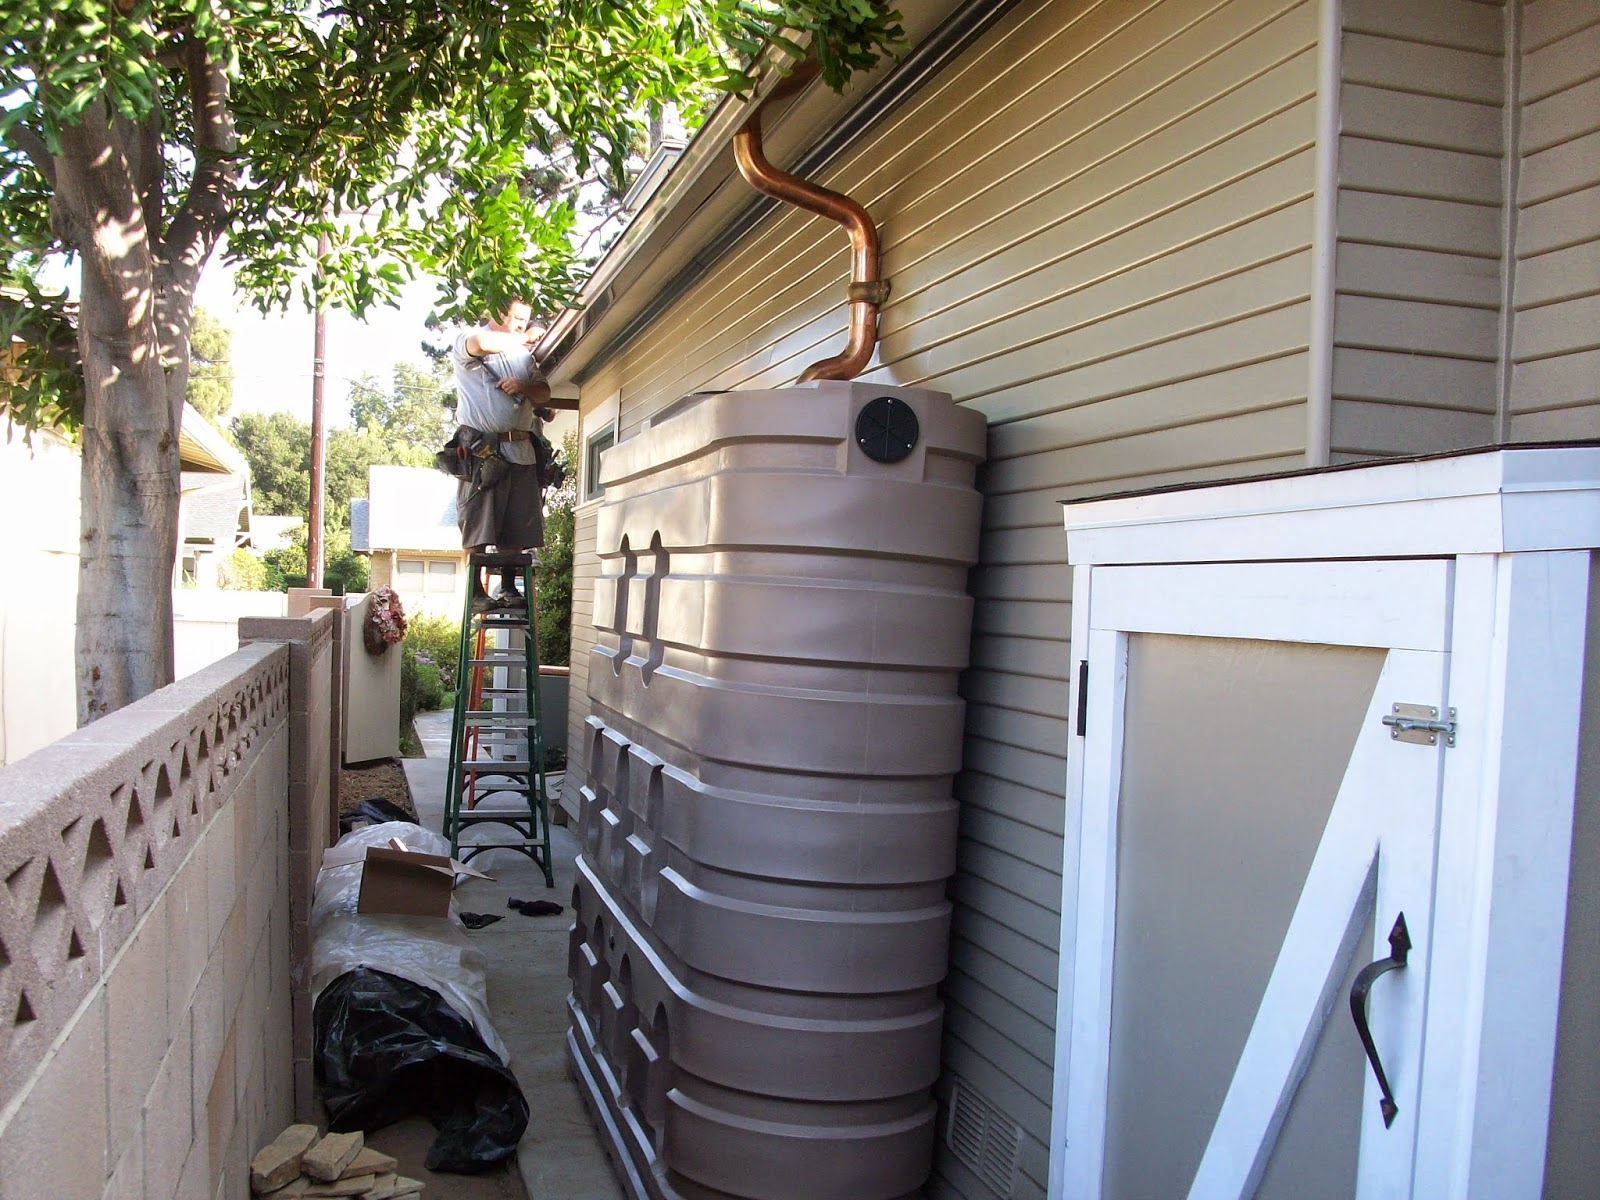 Rain Water Systems 05 01 11